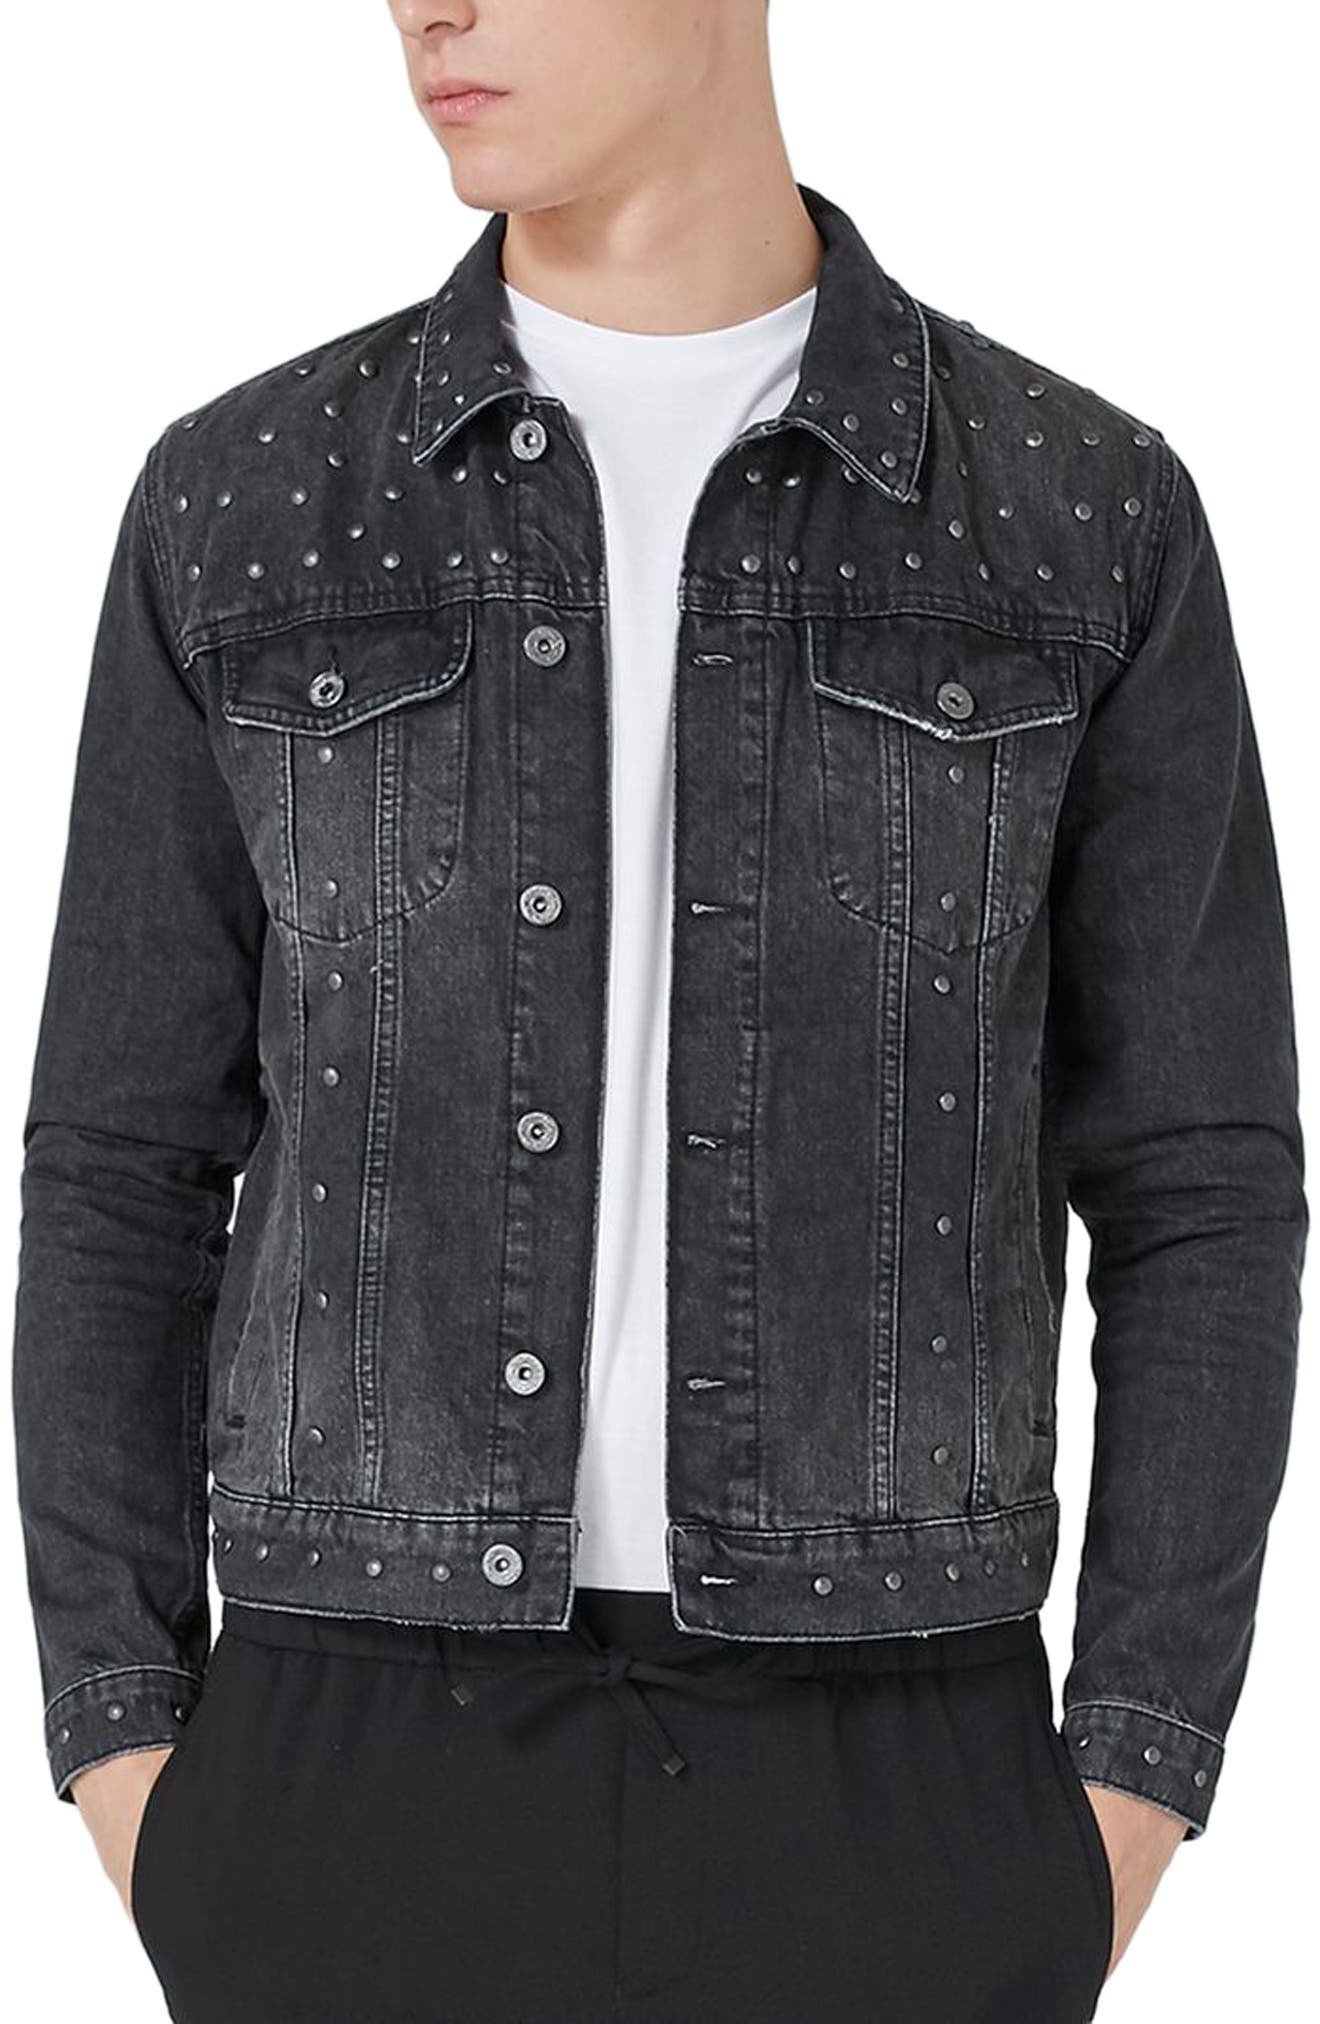 Alternate Image 1 Selected - Topman Studded Denim Jacket